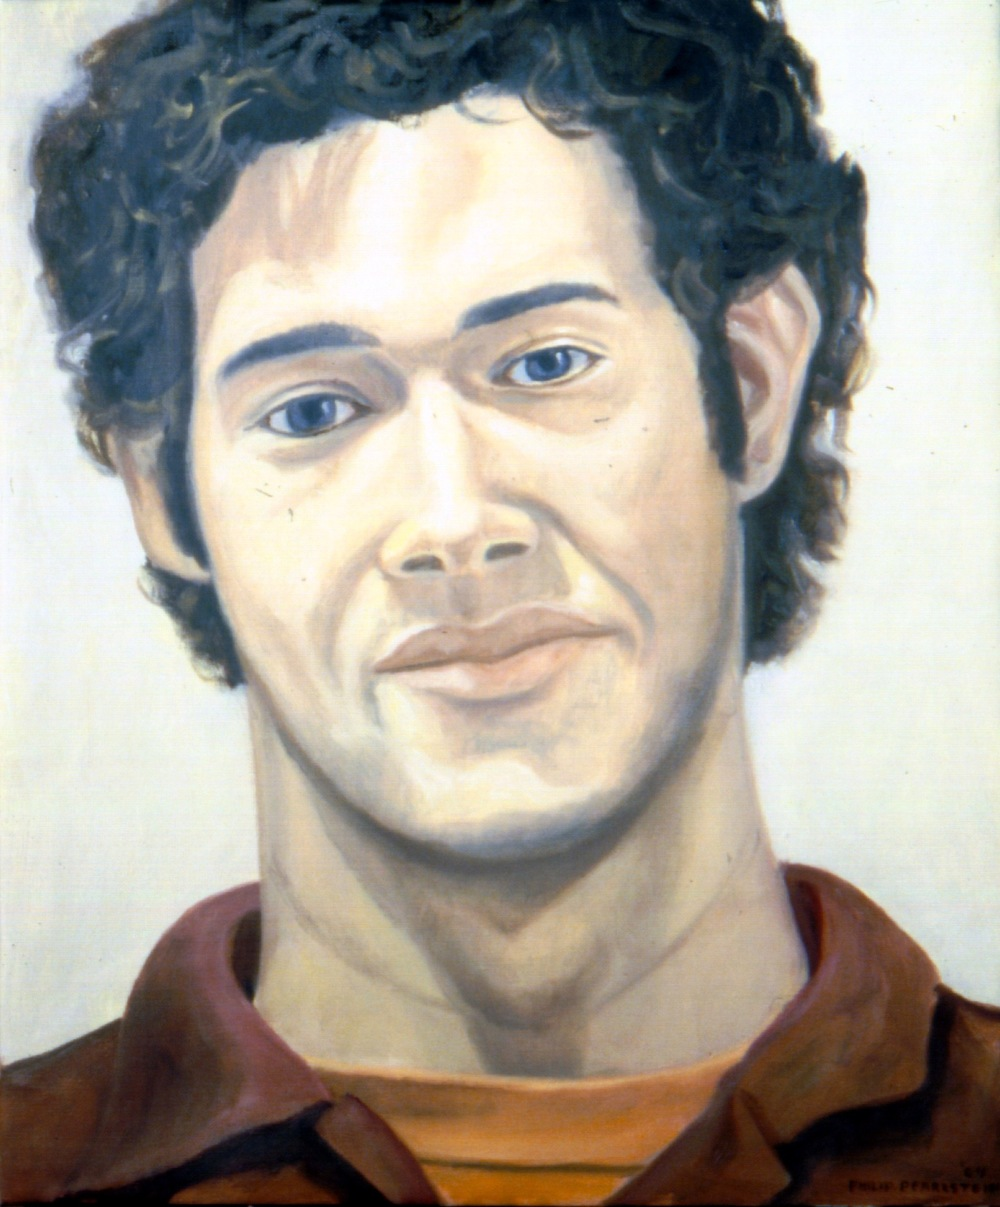 Rafeal Diaz-Tushnan , 2002 Oil on canvas